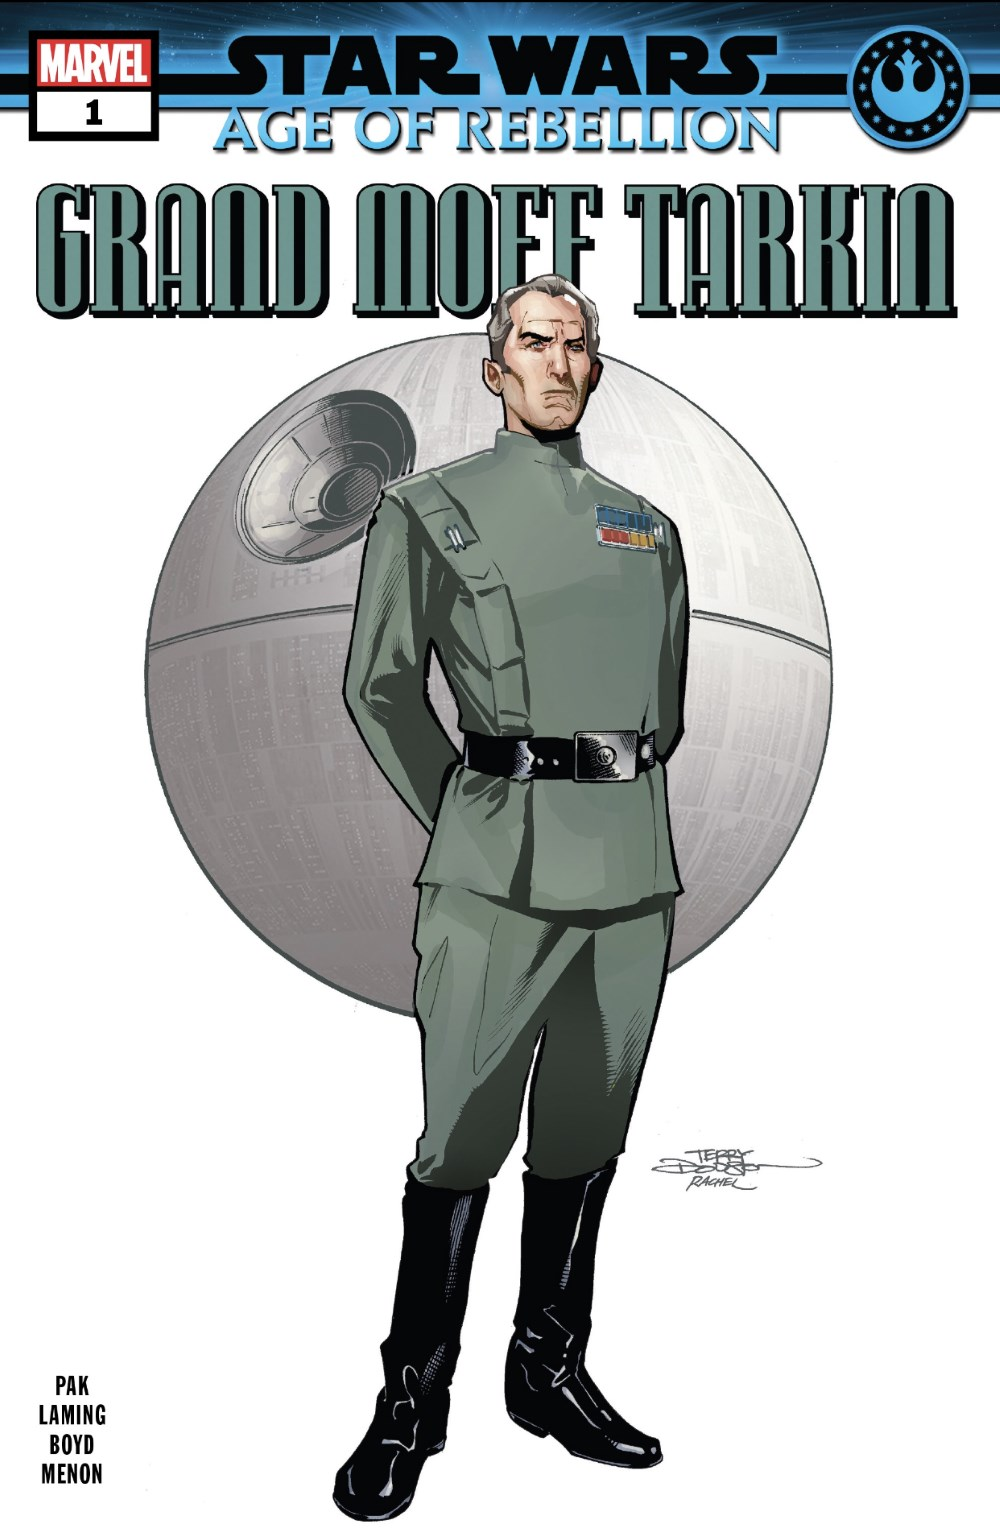 Star Wars: Age or Rebellion - Grand Moff Tarkin #1 Cover